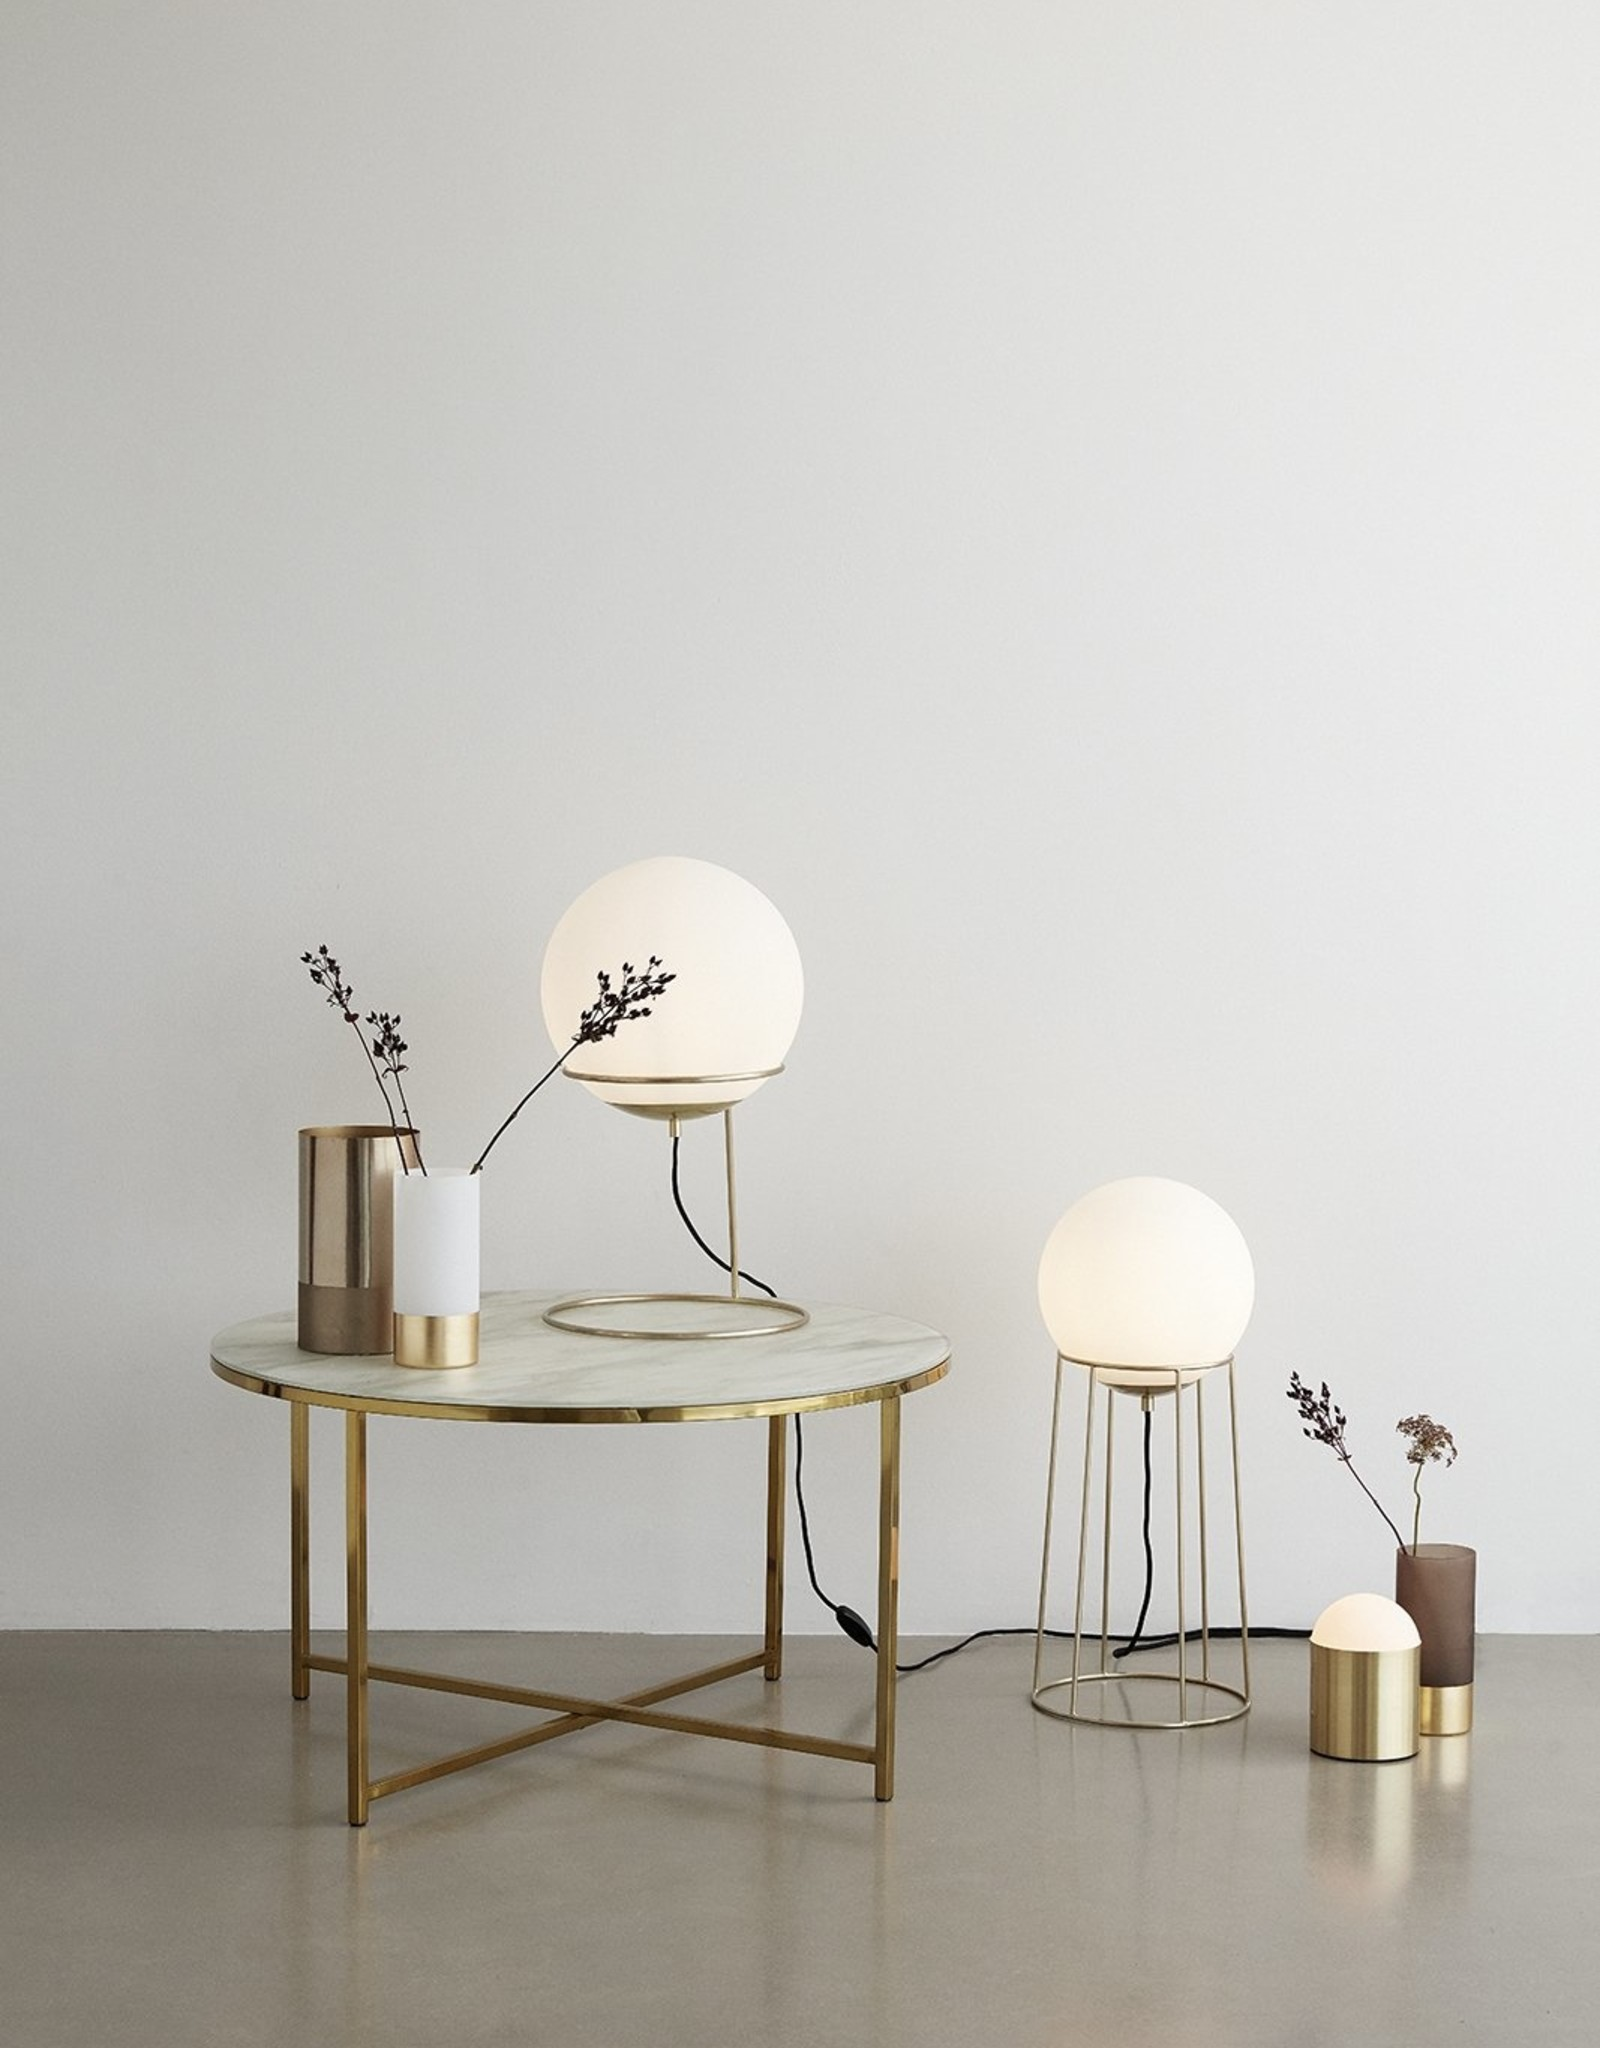 Hübsch Floor lamp